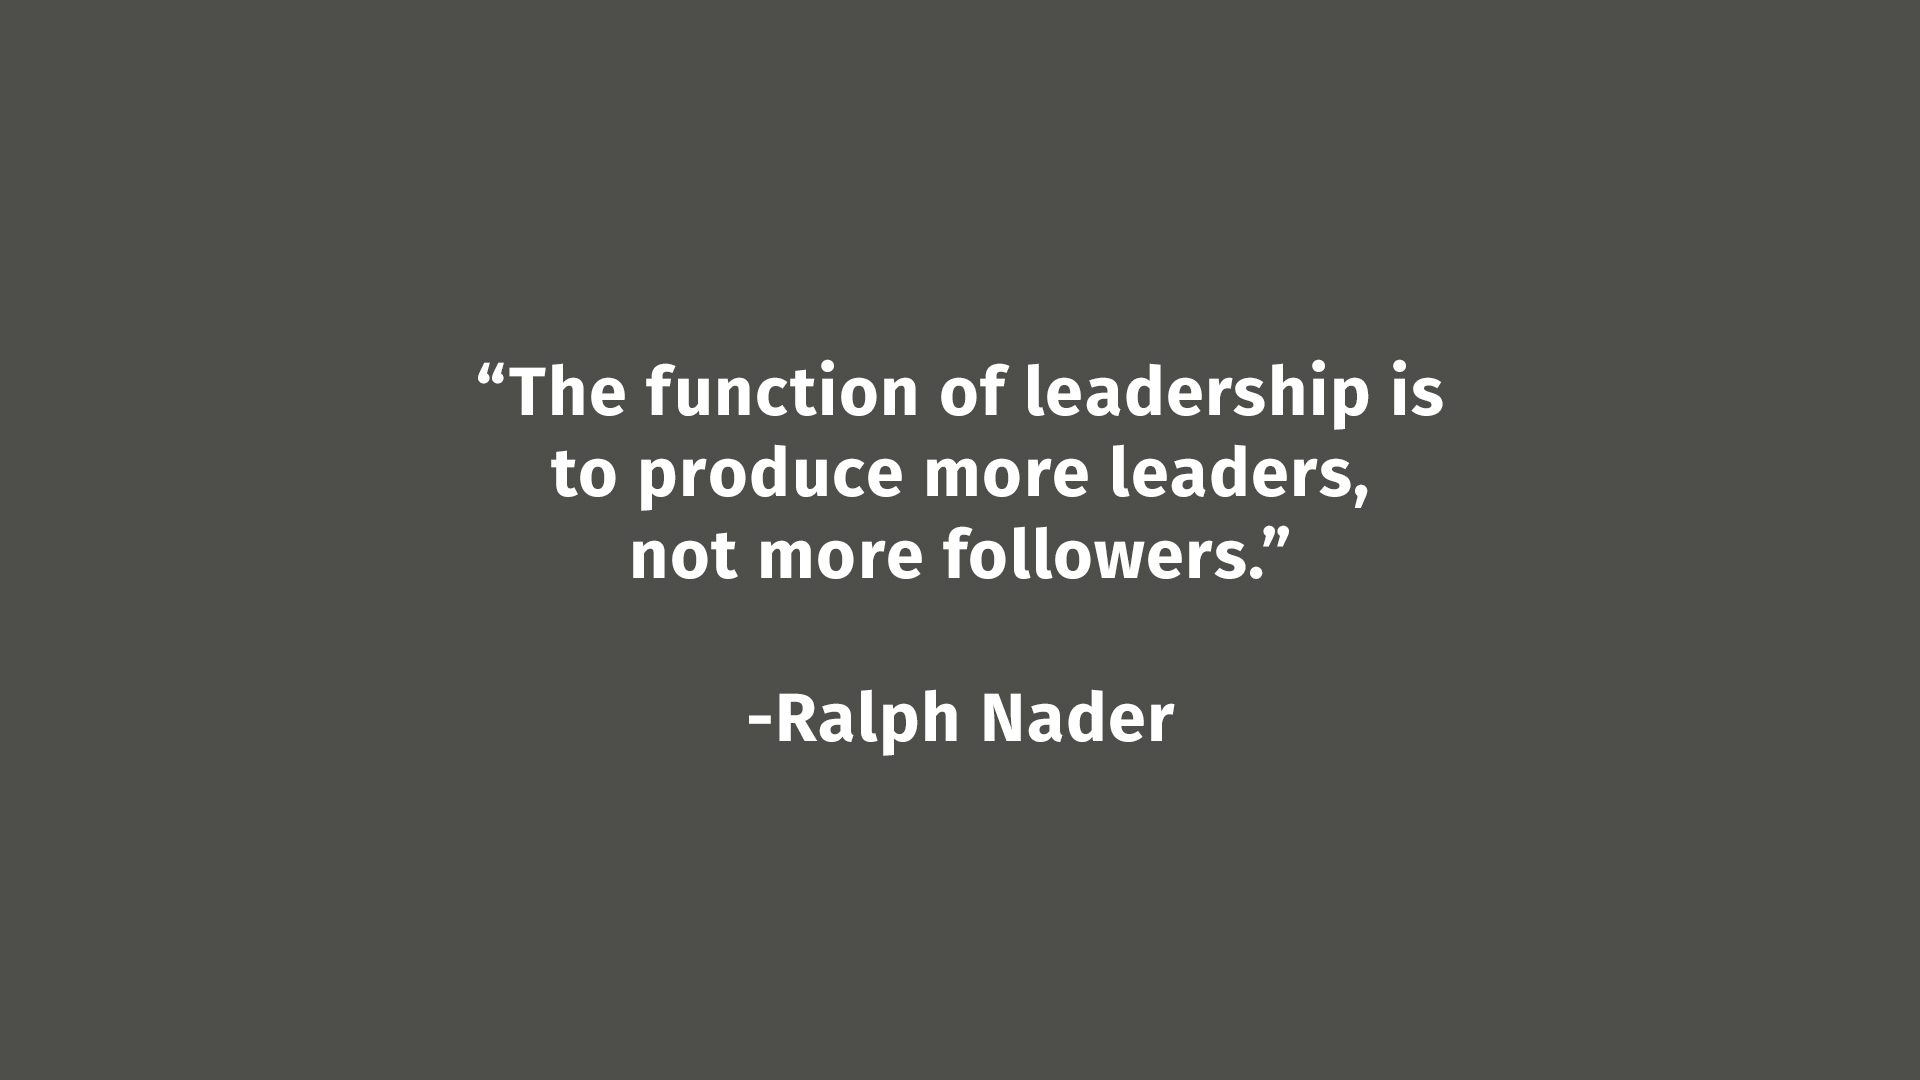 A Quote From Ralph Nader